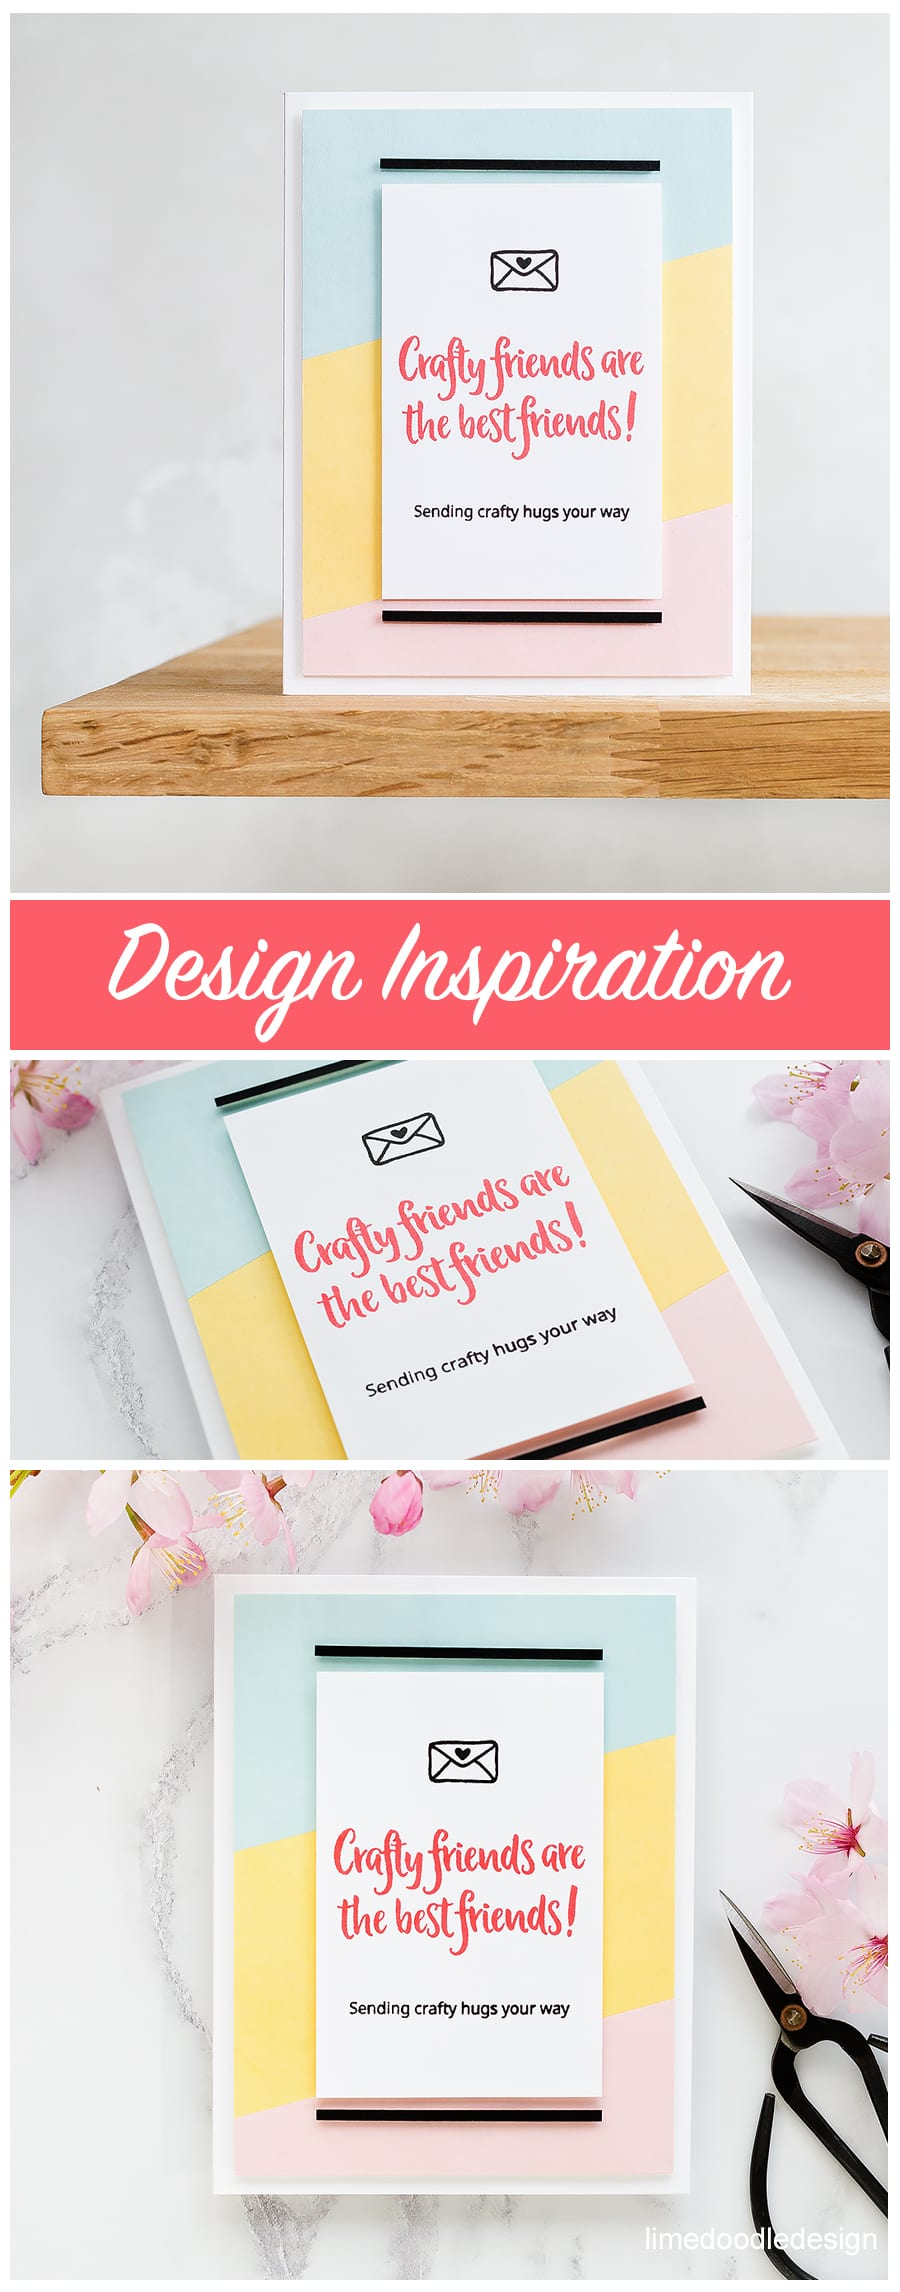 An email was the design inspiration for this crafty friends handmade card by Debby Hughes. Find out more here: https://limedoodledesign.com/2018/04/design-inspiration/